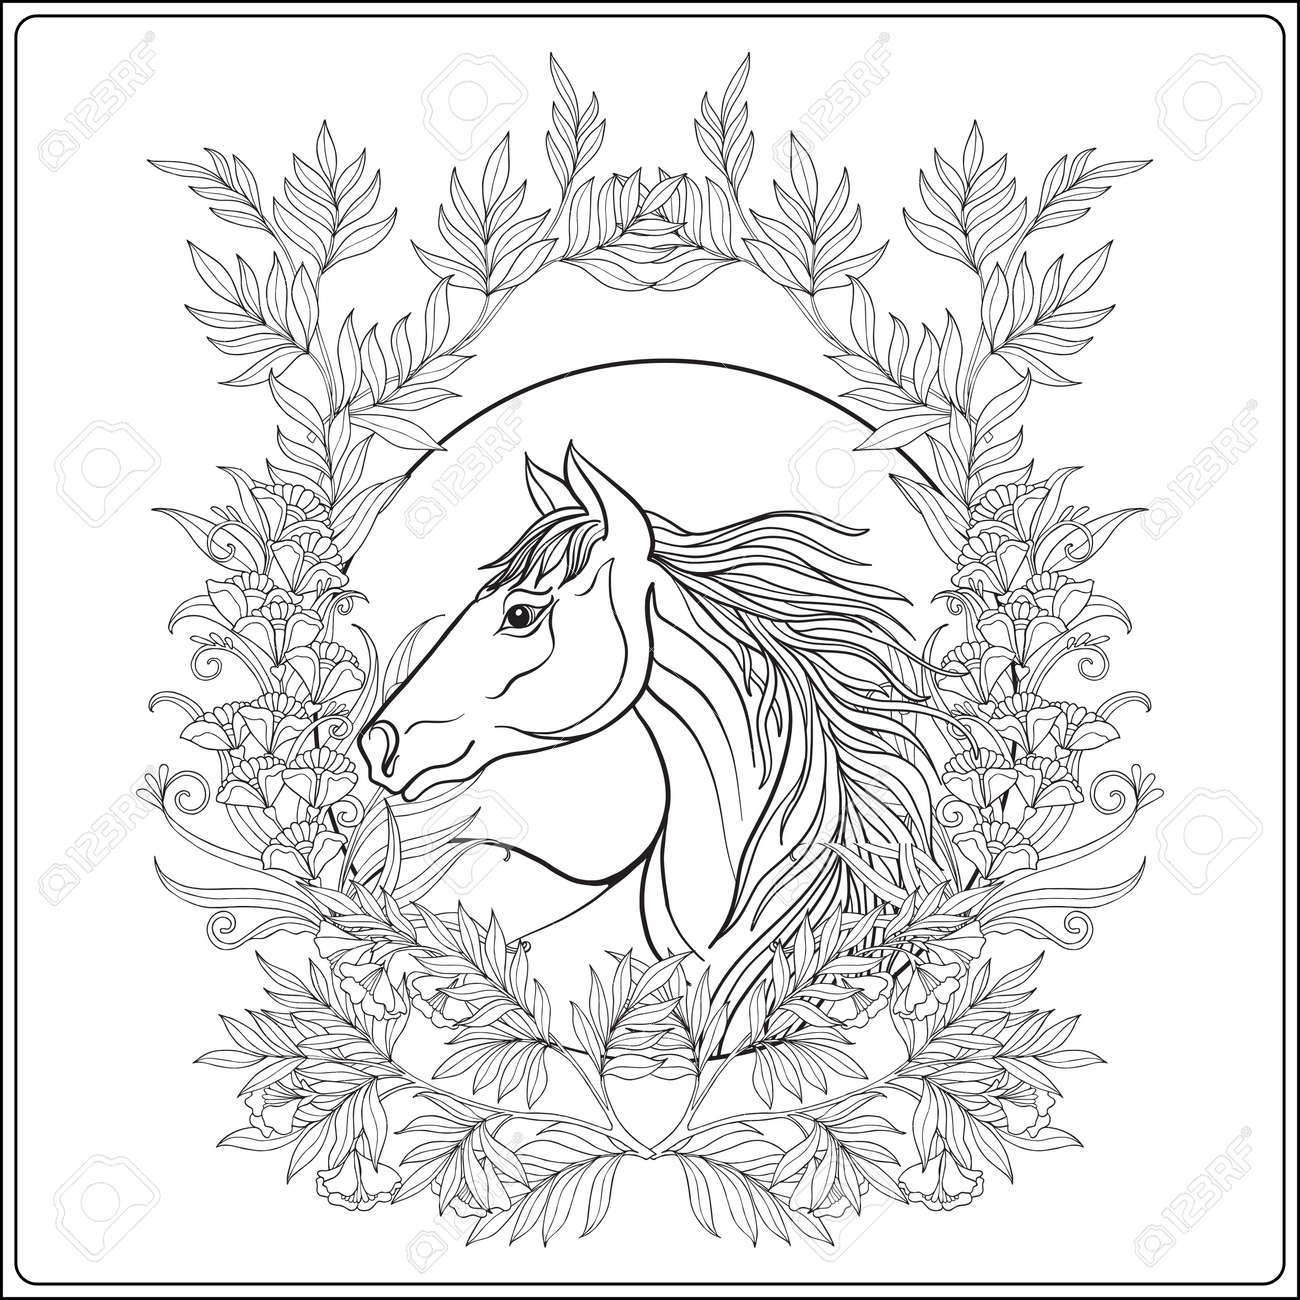 Horse In Vintage Decorative Floral Mandala Frame Illustration Coloring Book For Adult And Older